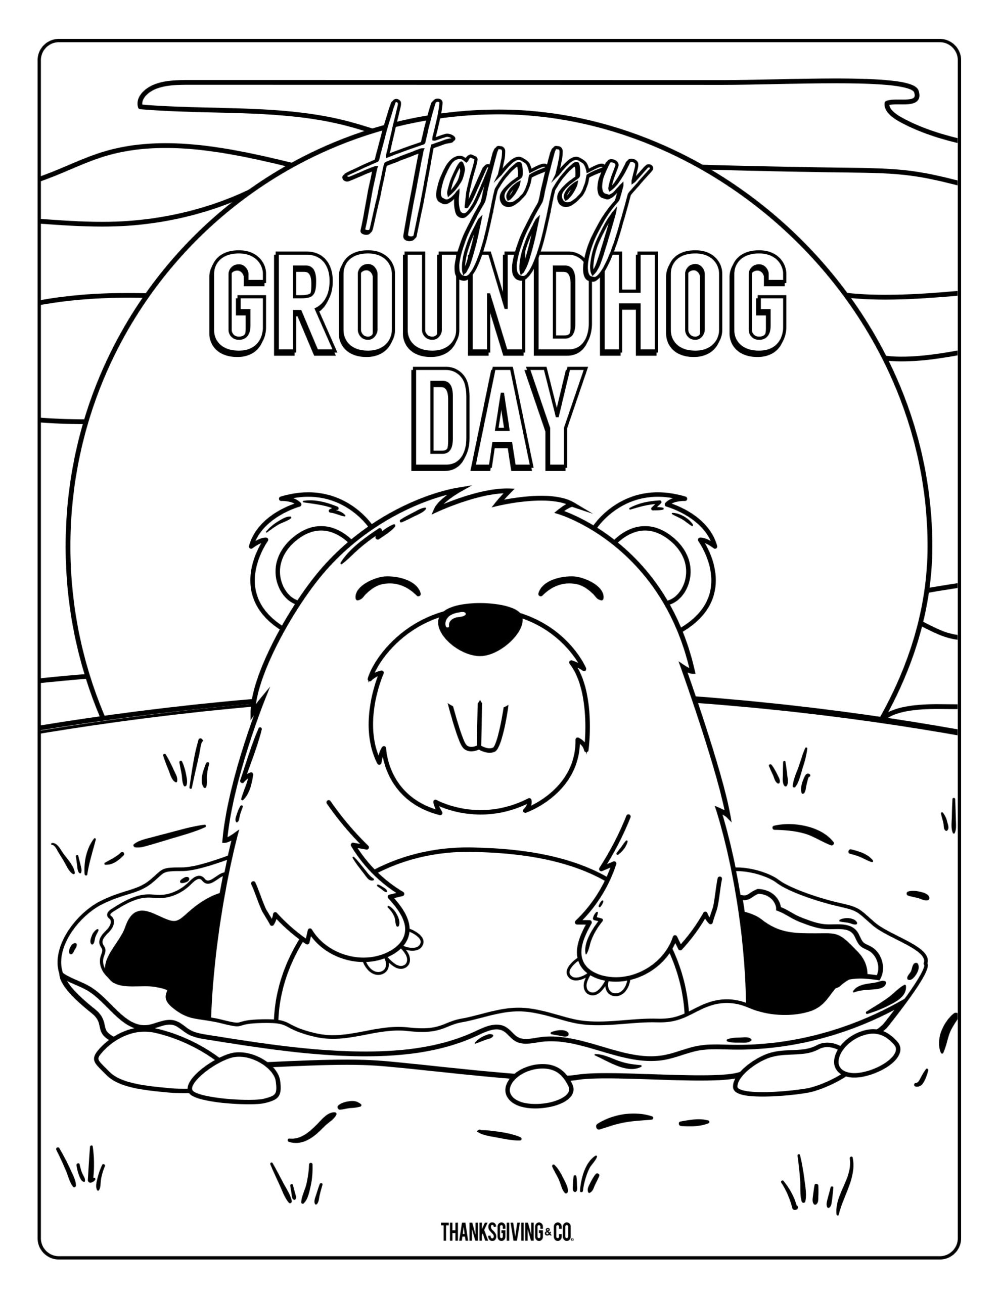 Groundhog Day Coloring Pages For Kids In 2021 Memorial Day Coloring Pages Coloring Pages For Kids Groundhog Day [ 1294 x 1000 Pixel ]